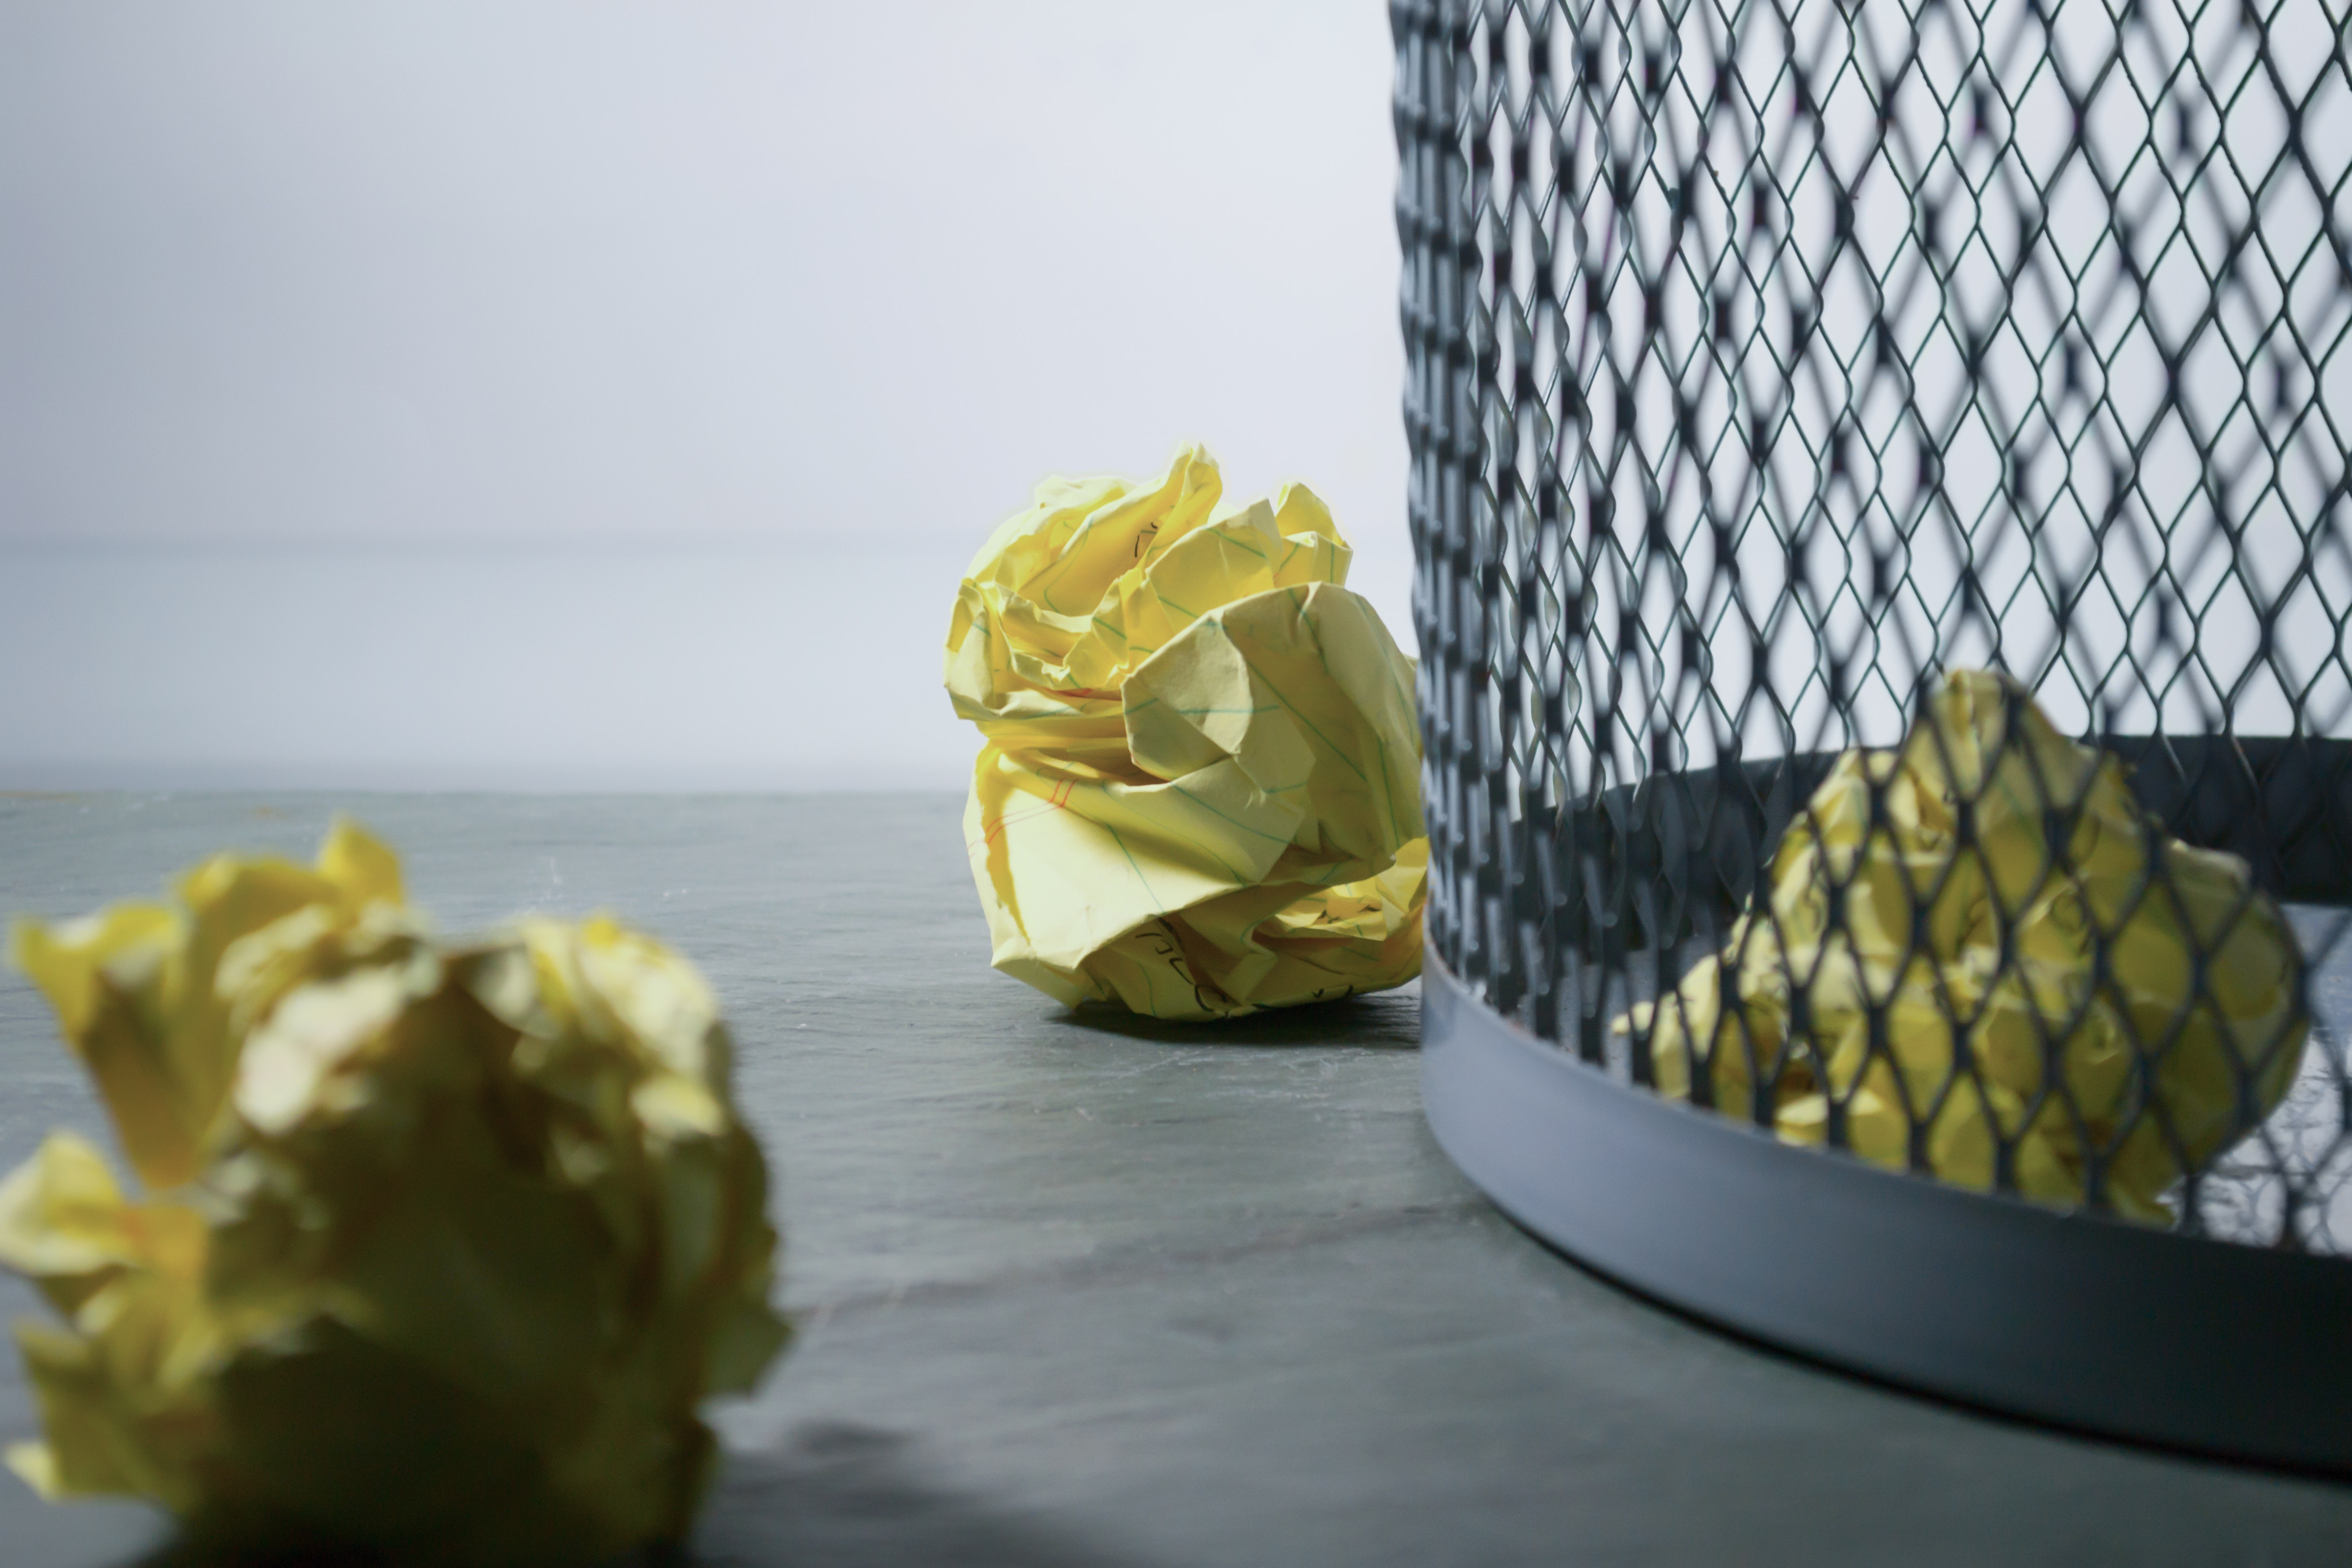 Focus Photo of Yellow Paper Near Trash Can, Blur, Close-up, Color, Crumpled, HQ Photo